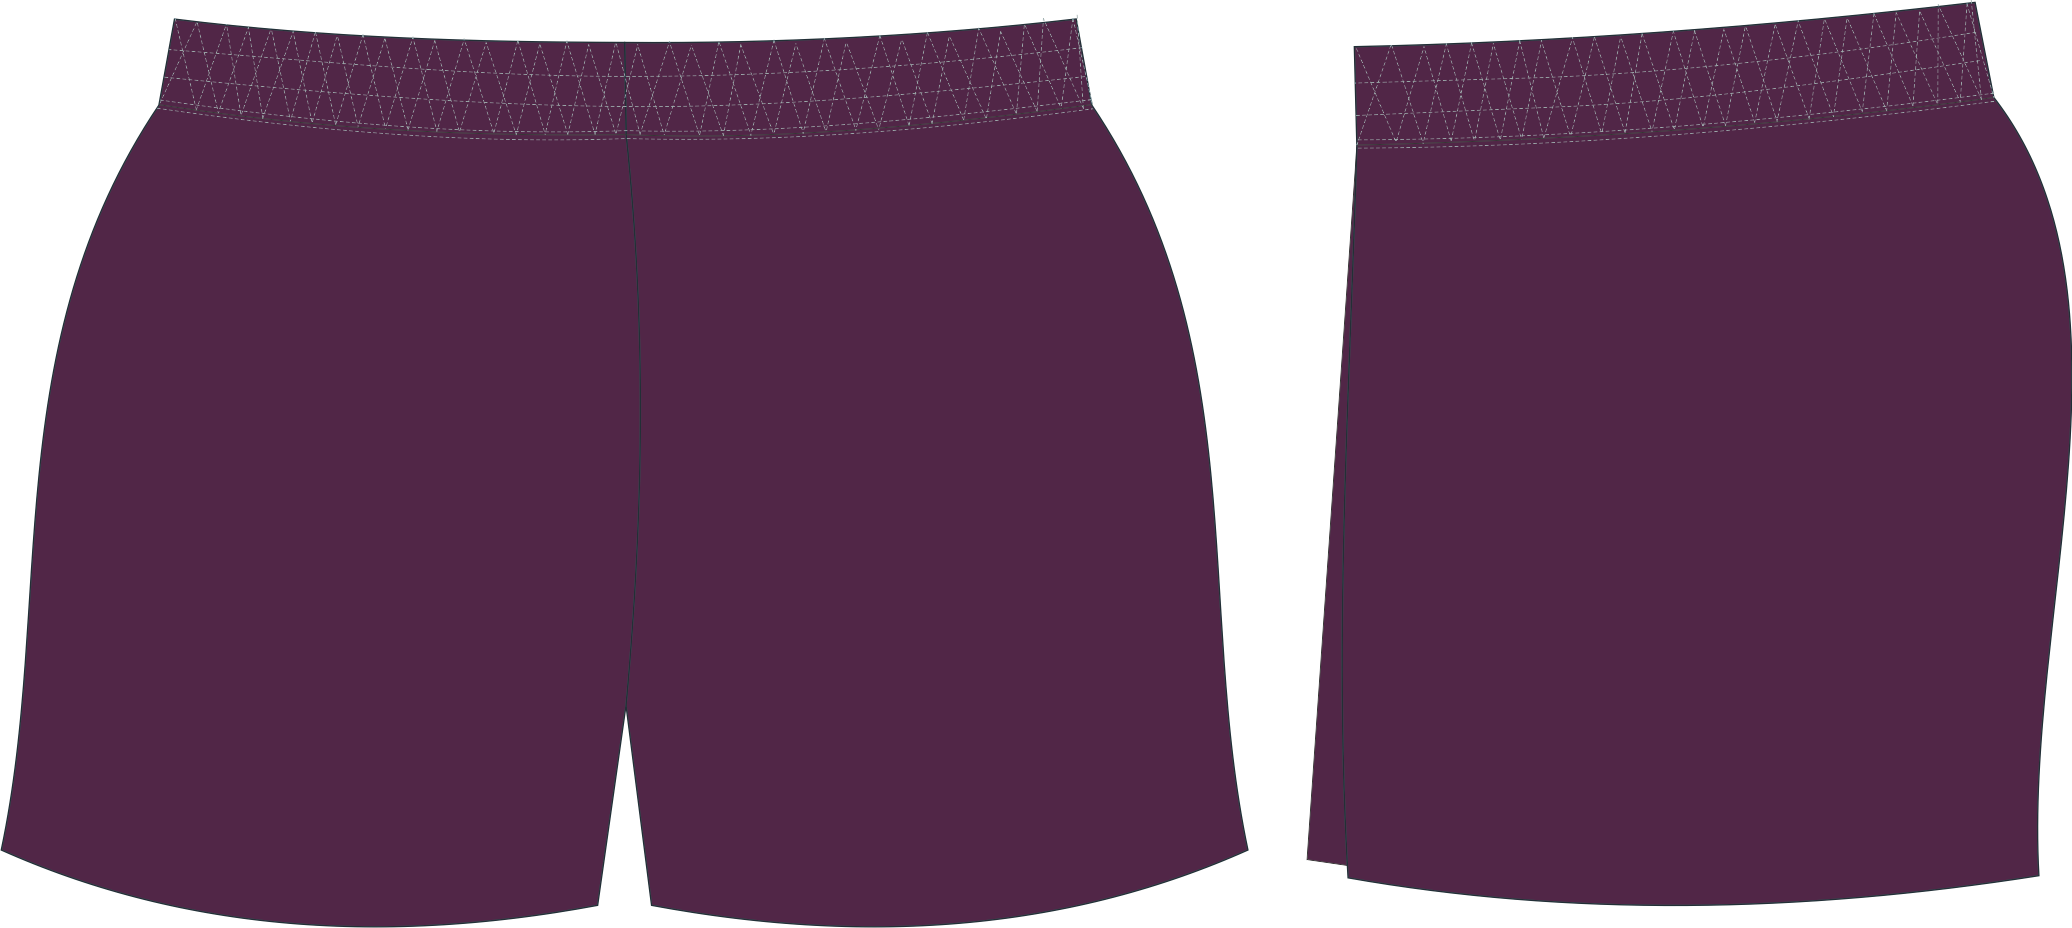 S206XSHT Maroon.png